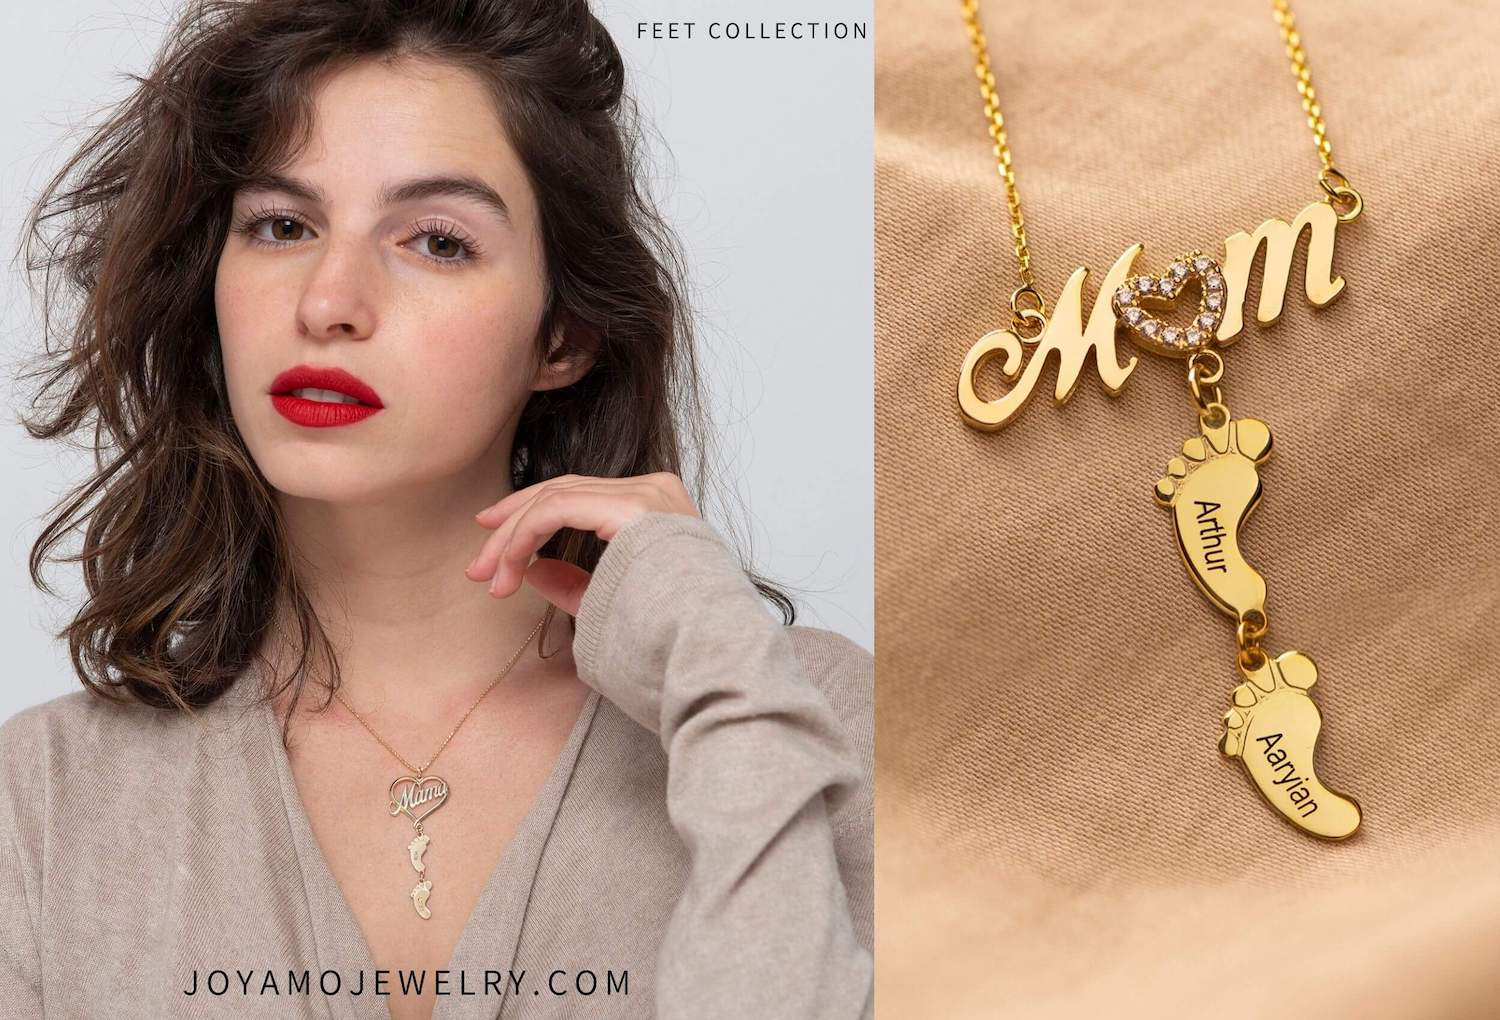 JoyAmo Jewelry, Family Gifts for Every Unforgettable Moment